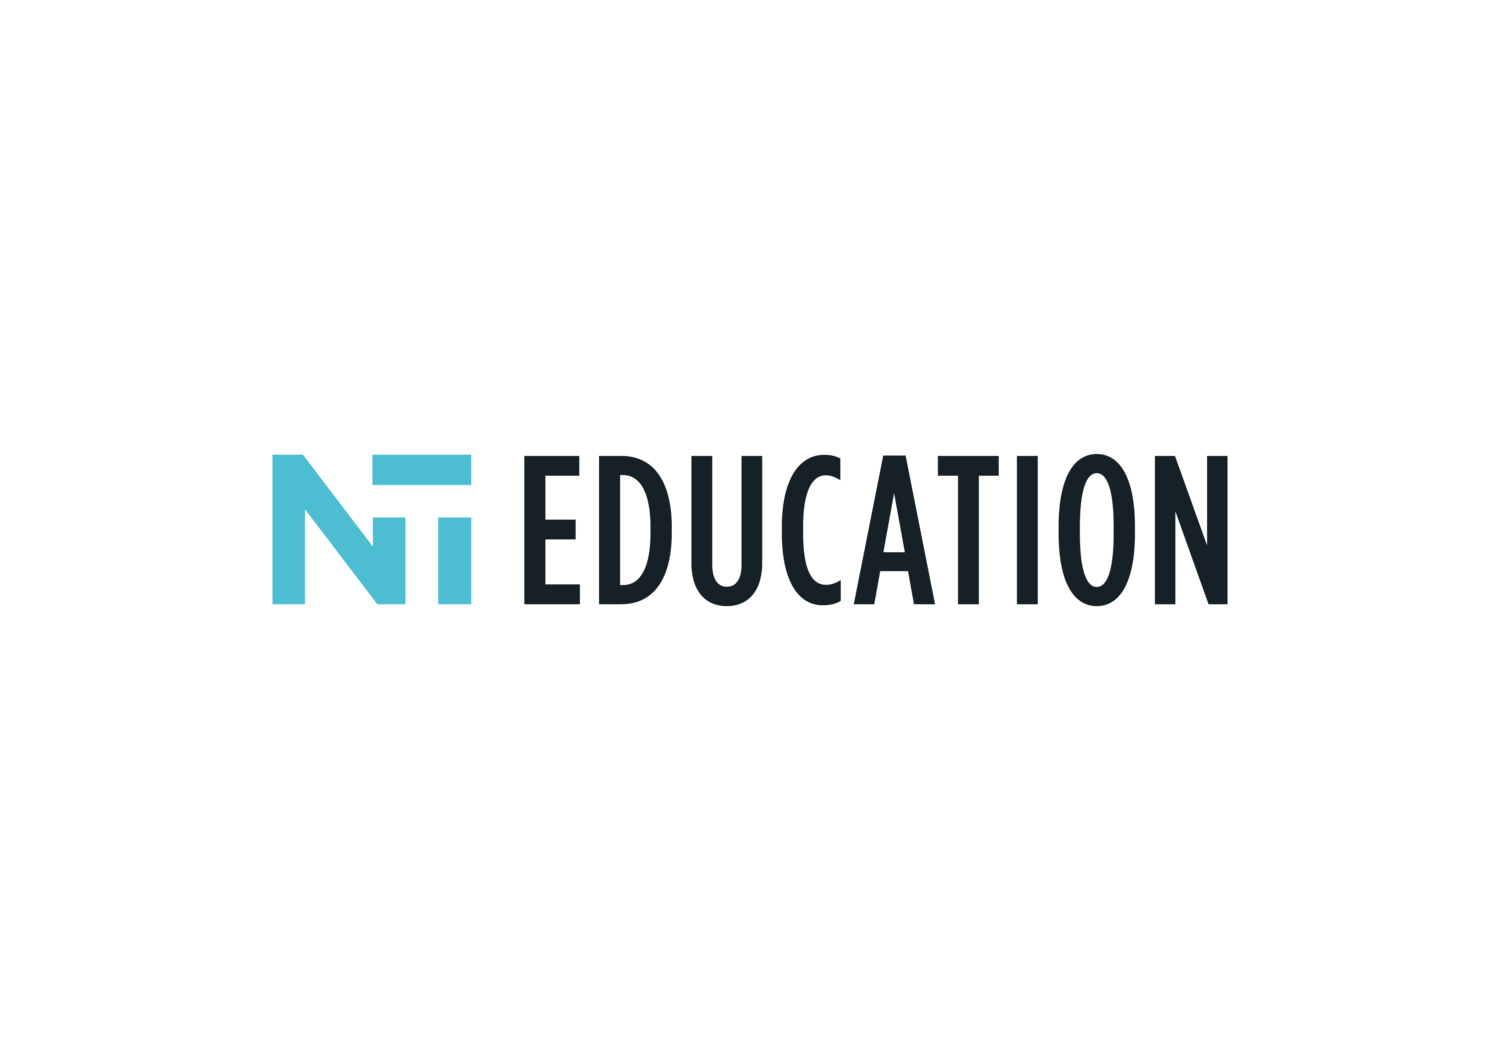 NT EDUCATION